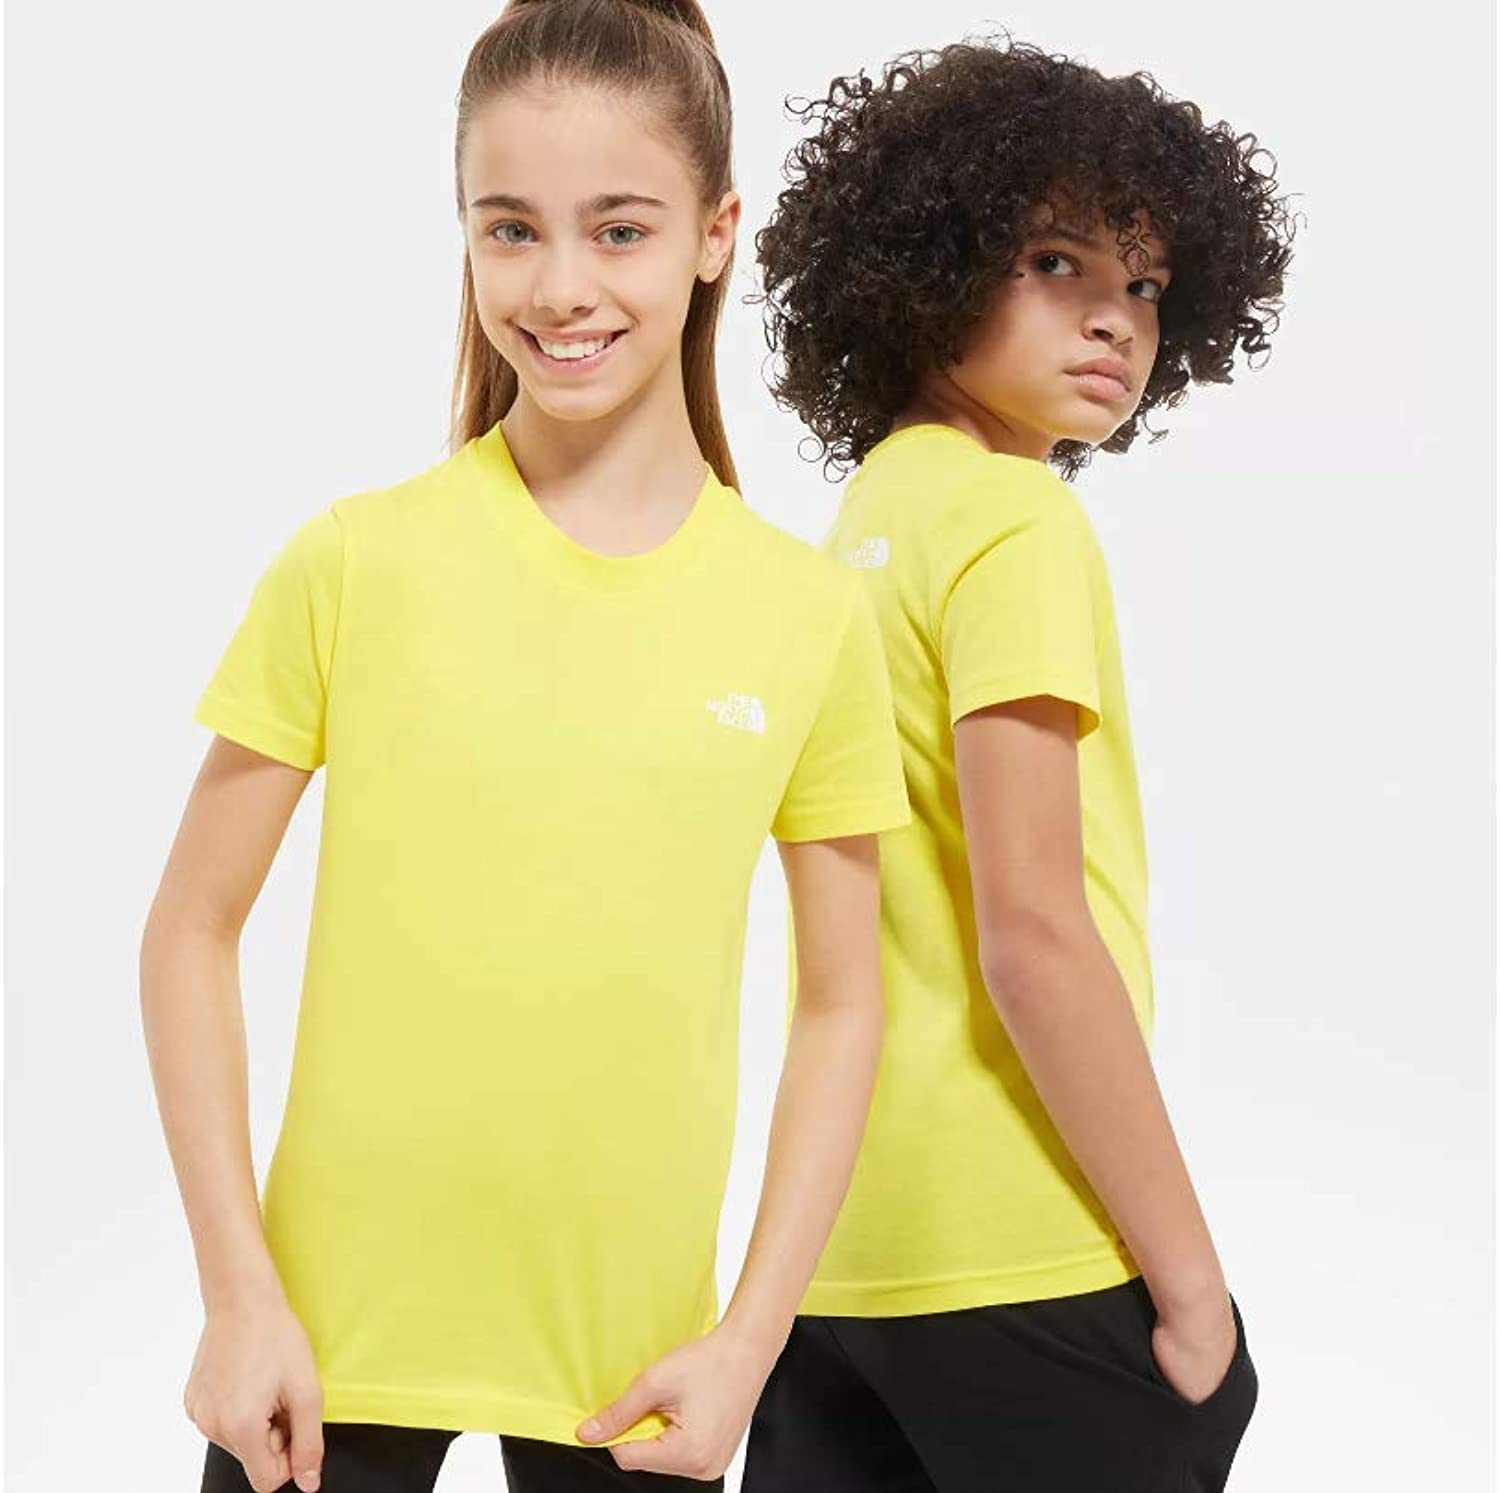 The North Face LA Camiseta Amarilla del Chico NF0A2WAN: Amazon.es: Deportes y aire libre